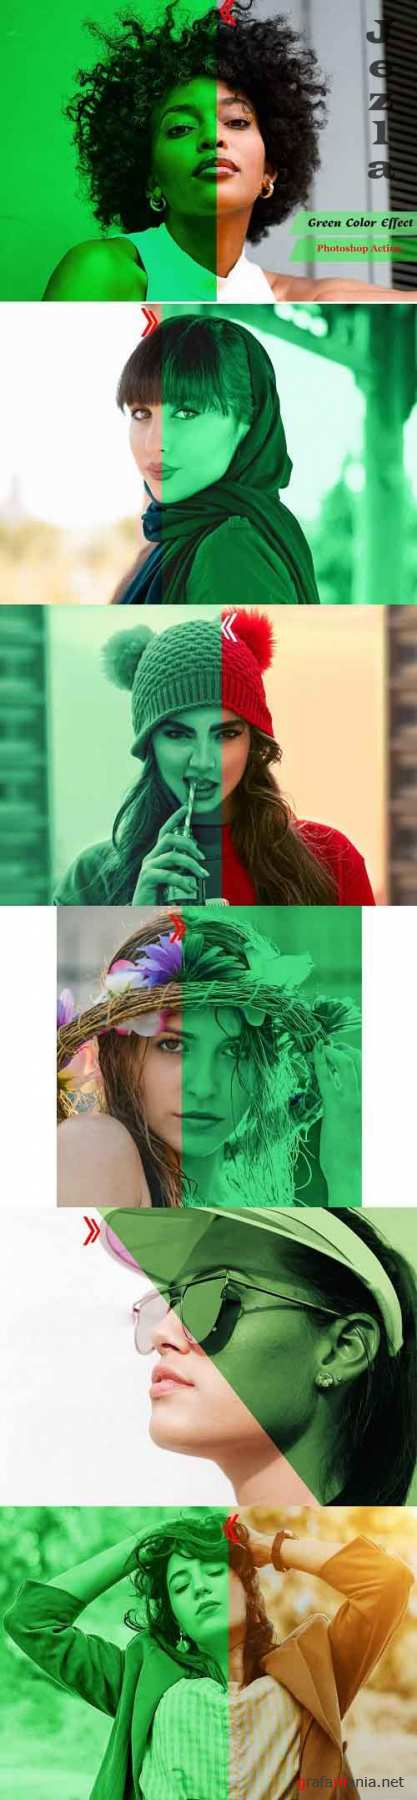 Green Color Effect Photoshop Action - 4939667